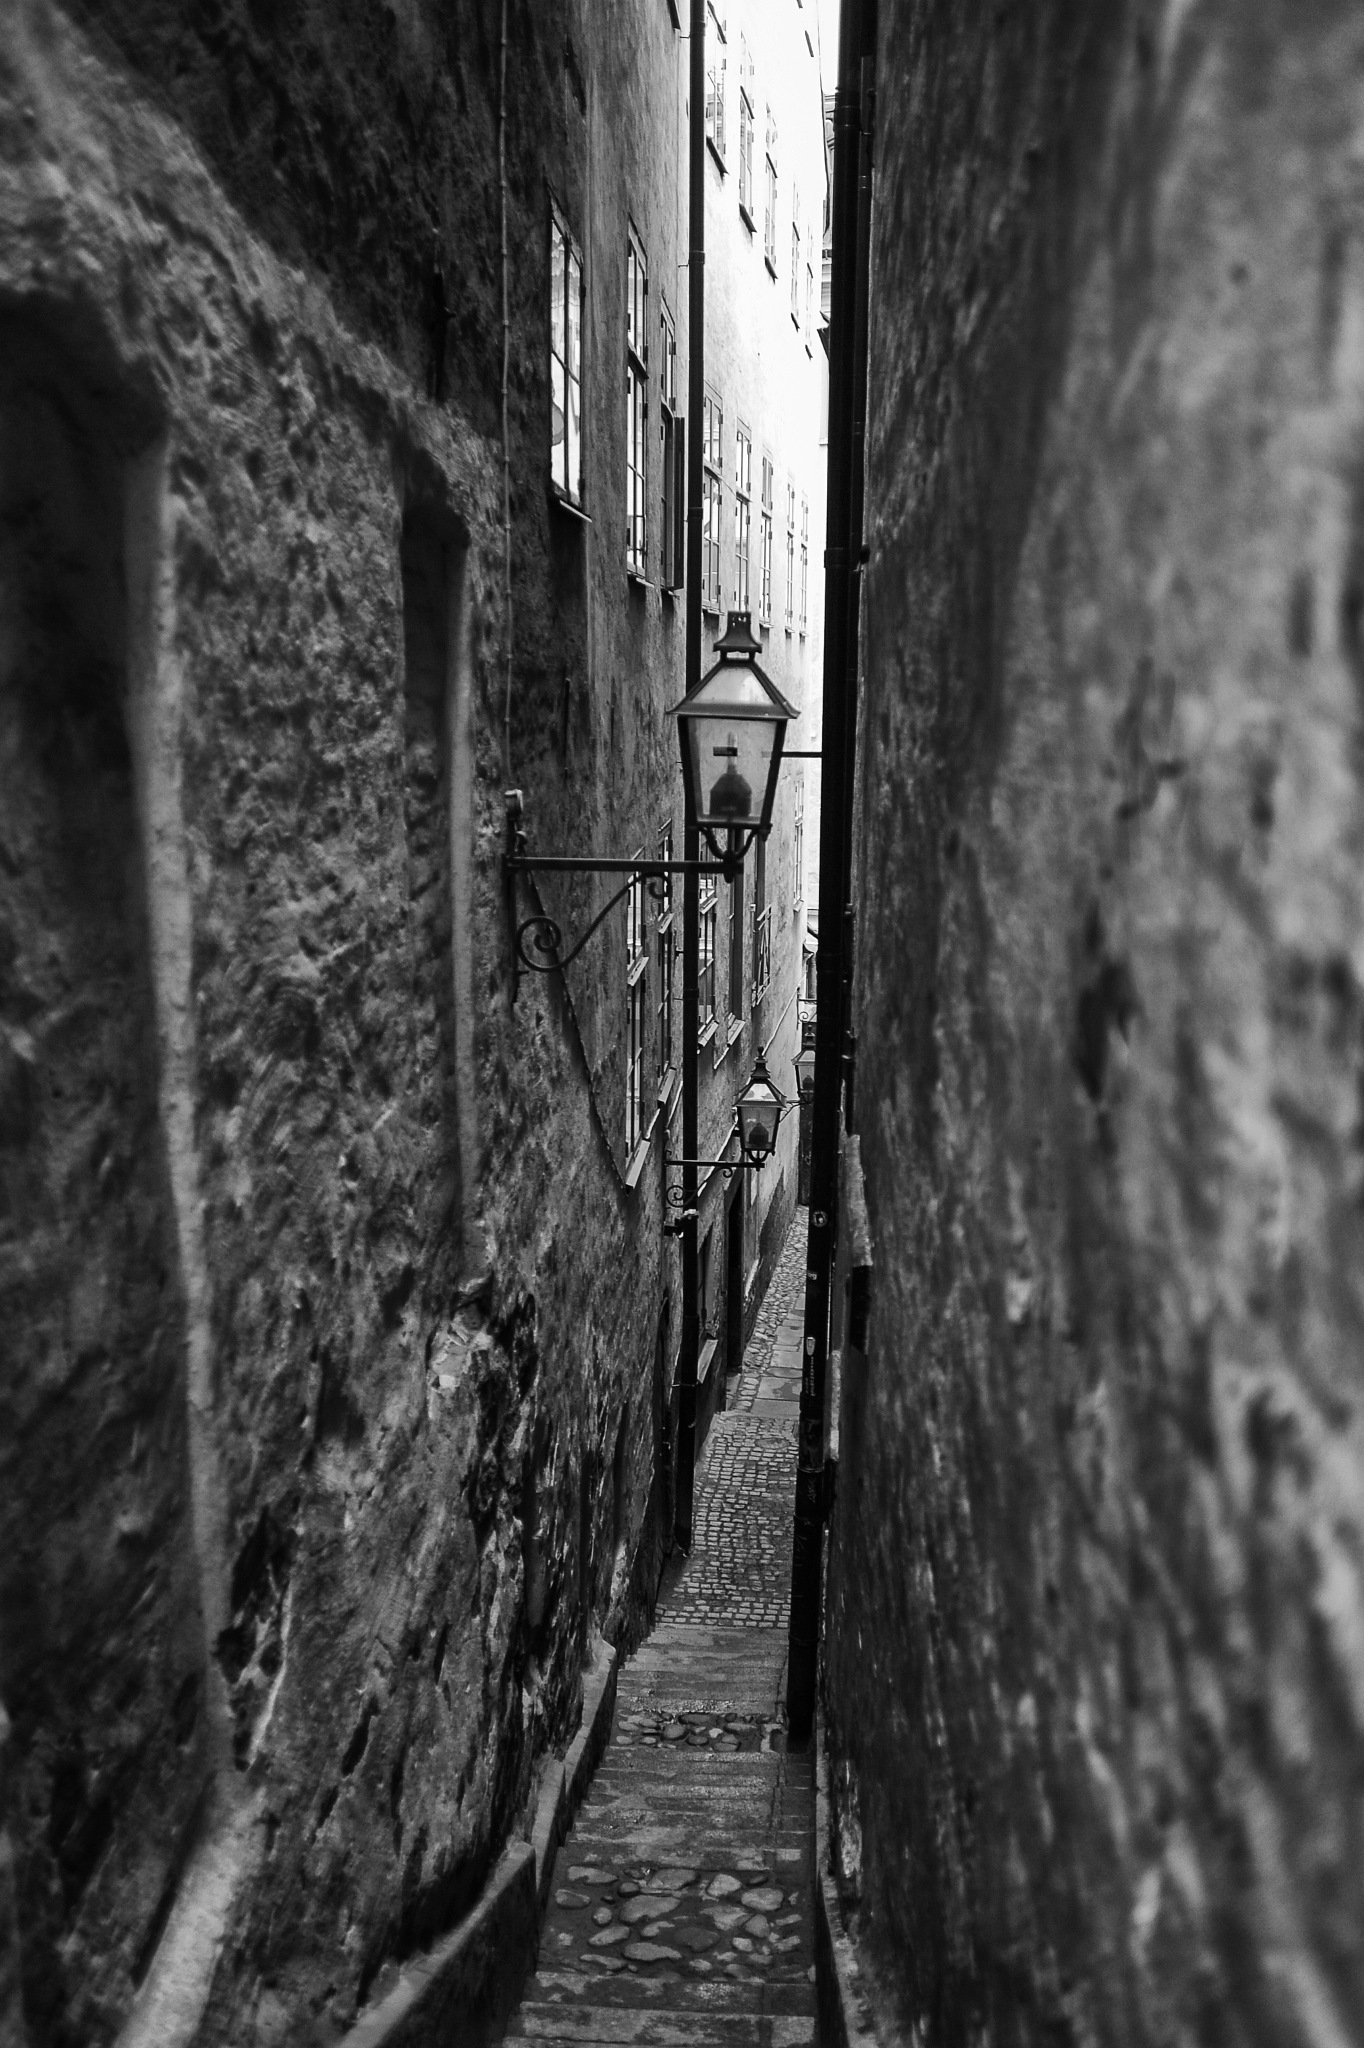 The narrow alley by Stefan Tyrbo